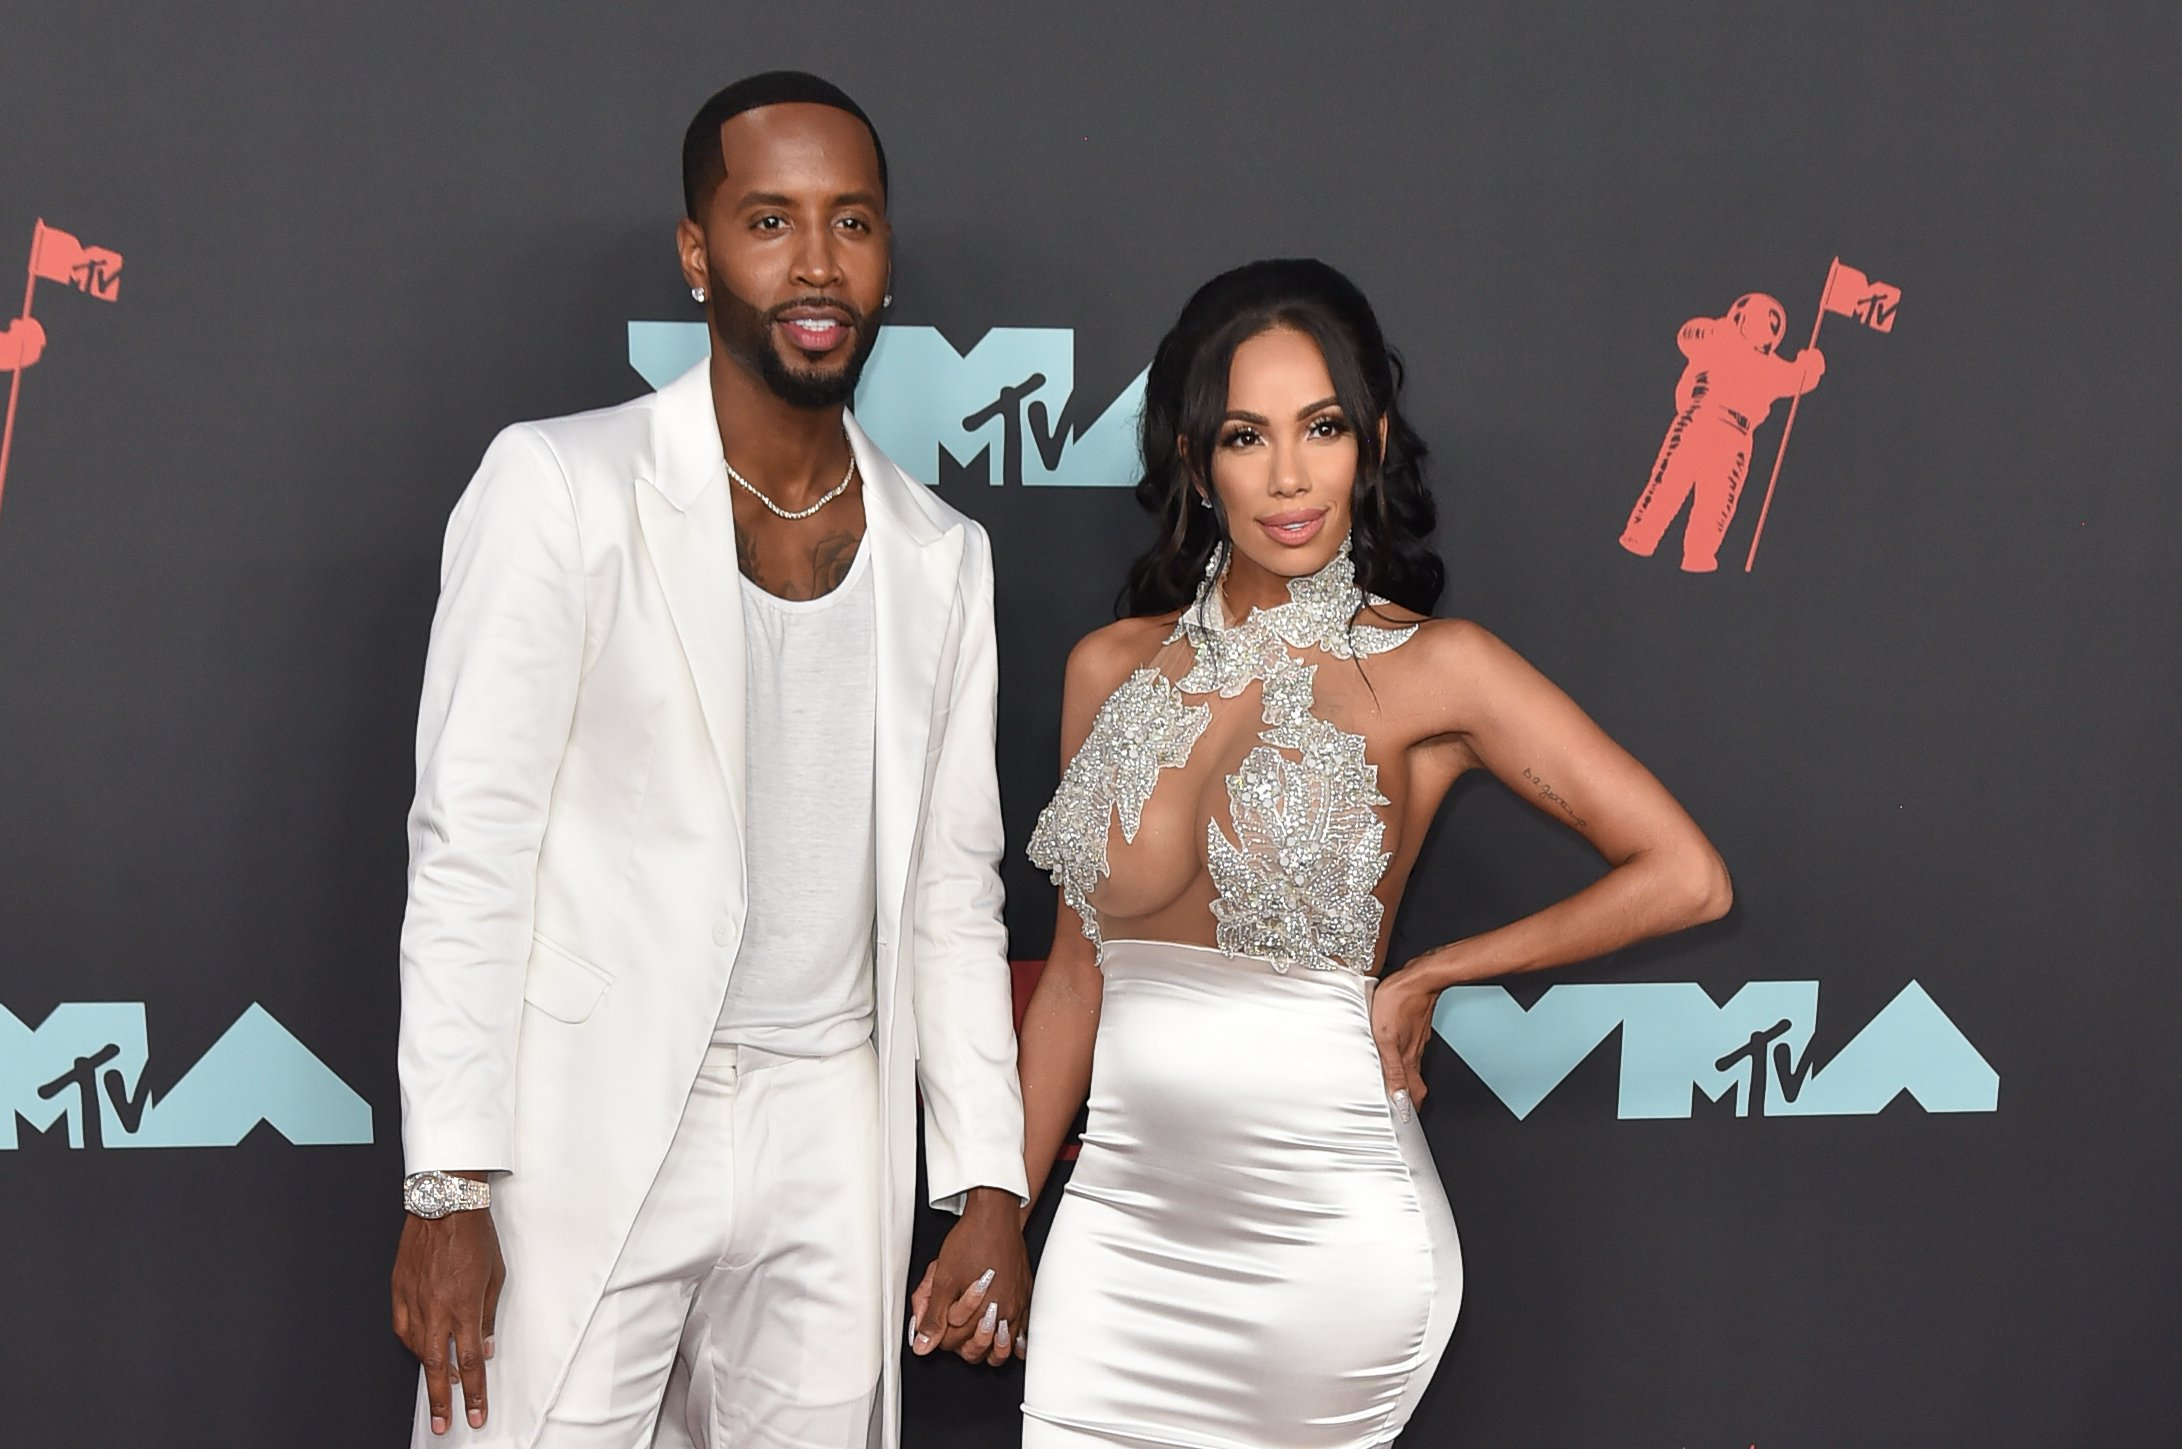 Safaree Samuels and Erica Mena attend the 2019 MTV Video Music Awards at Prudential Center  in Newark on August 26, 2019. | Photo: Getty Images